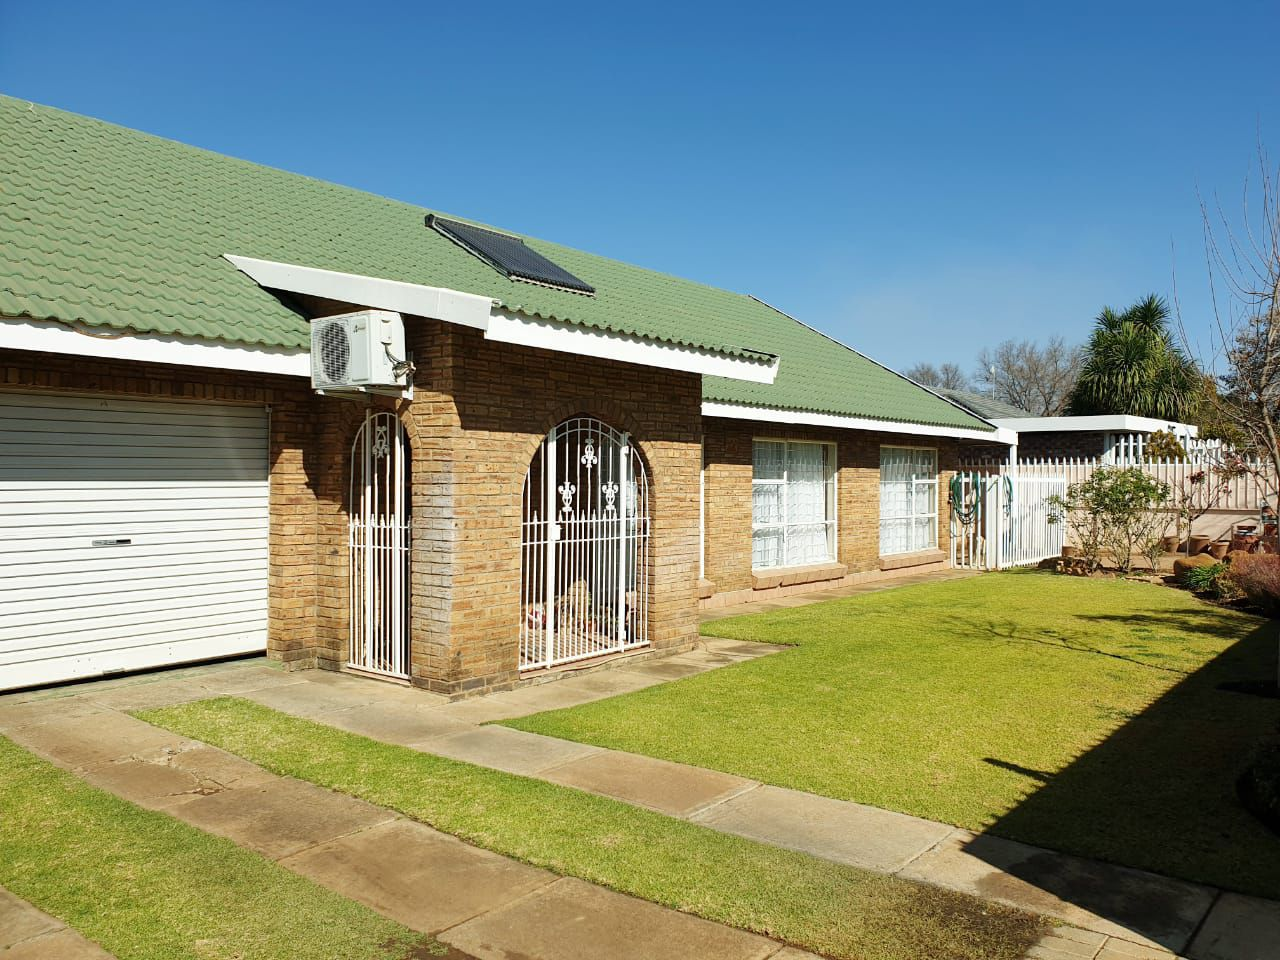 House in Kanonierspark - WhatsApp Image 2019-07-15 at 12.11.30 (1).jpeg